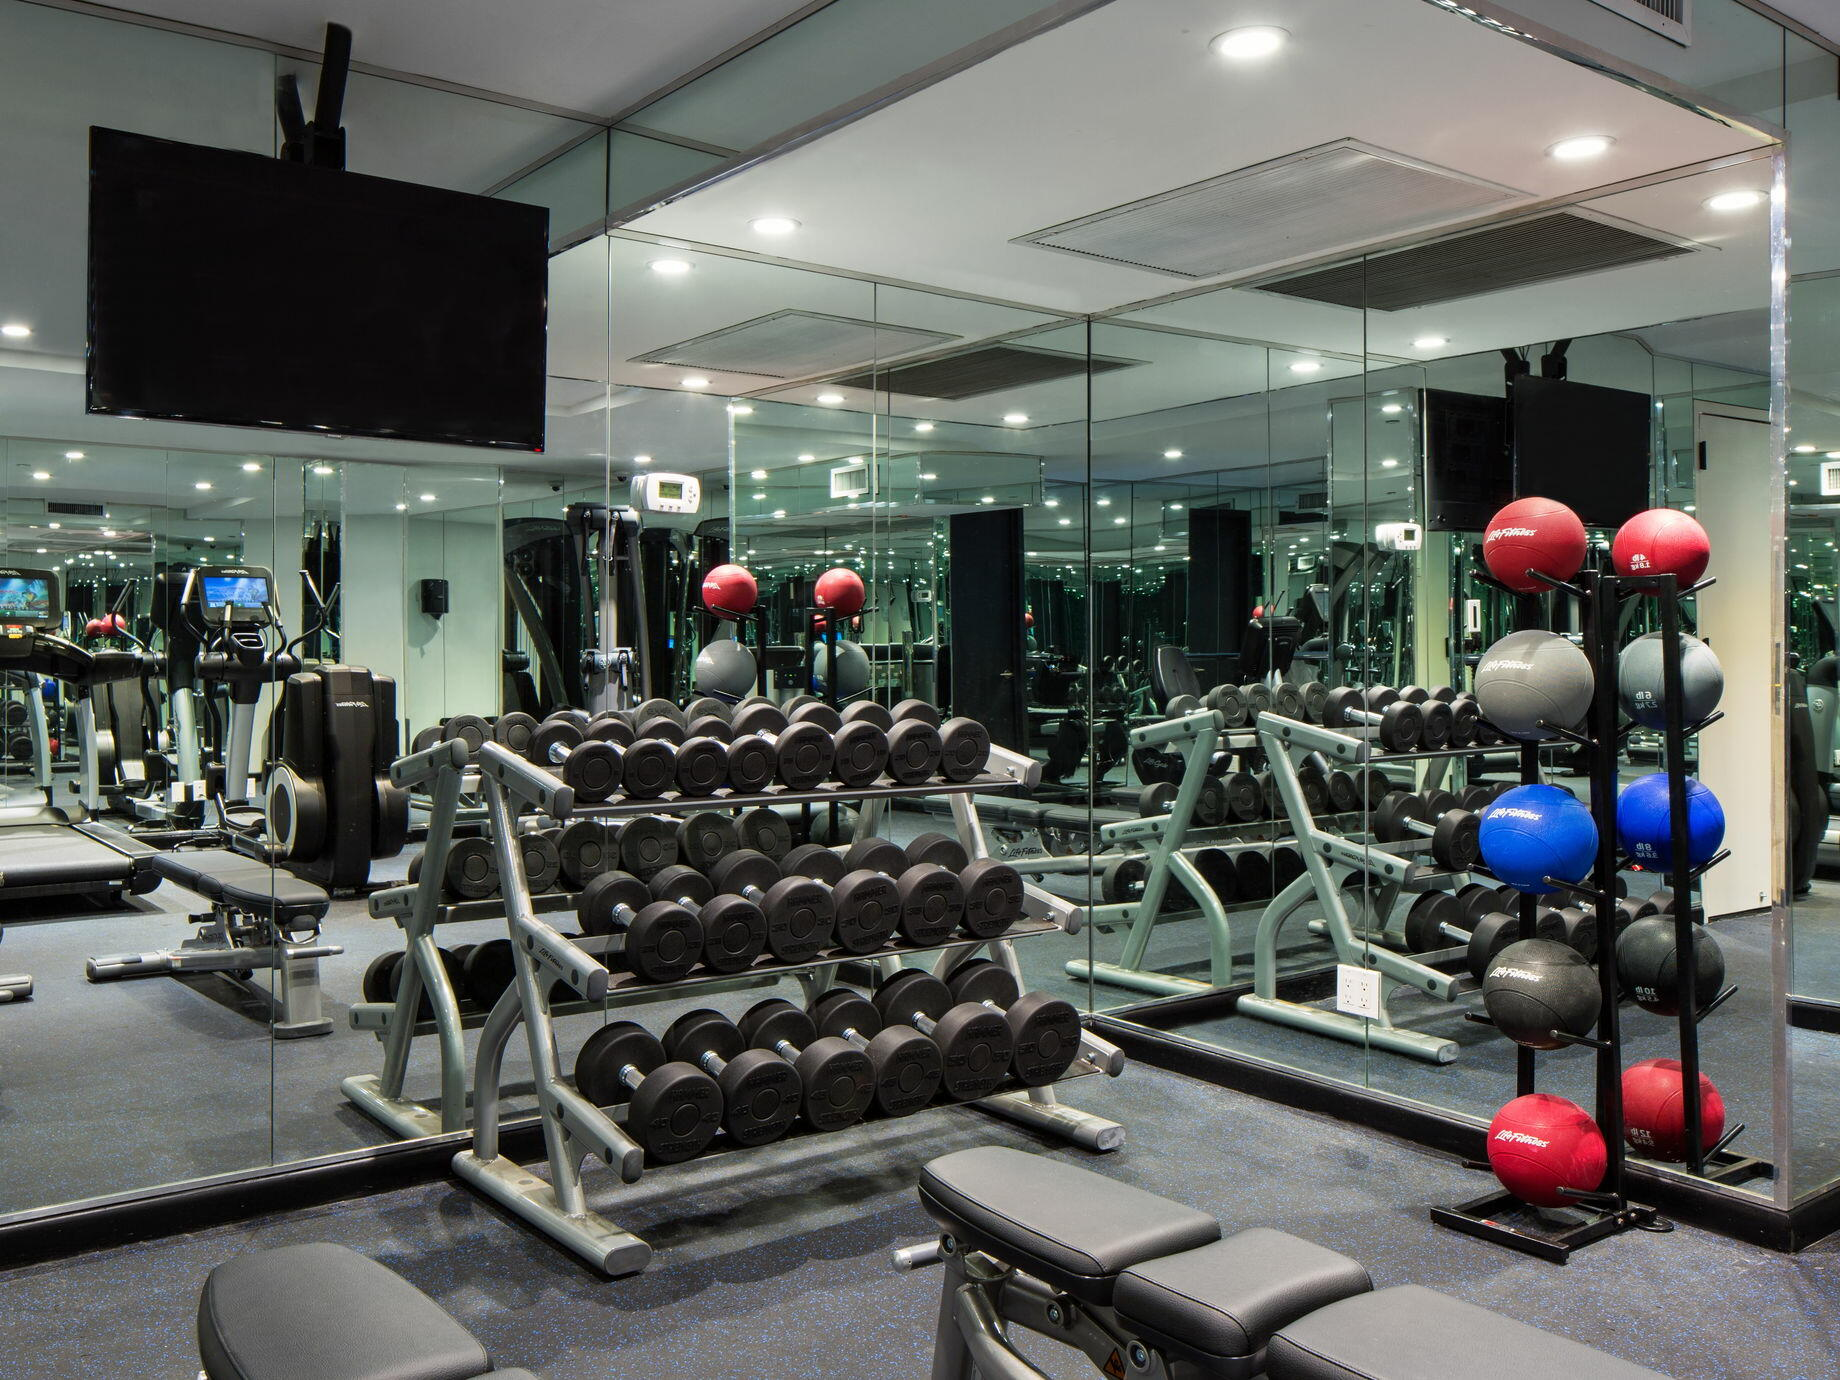 Weights & equipment in the gym at The Time New York